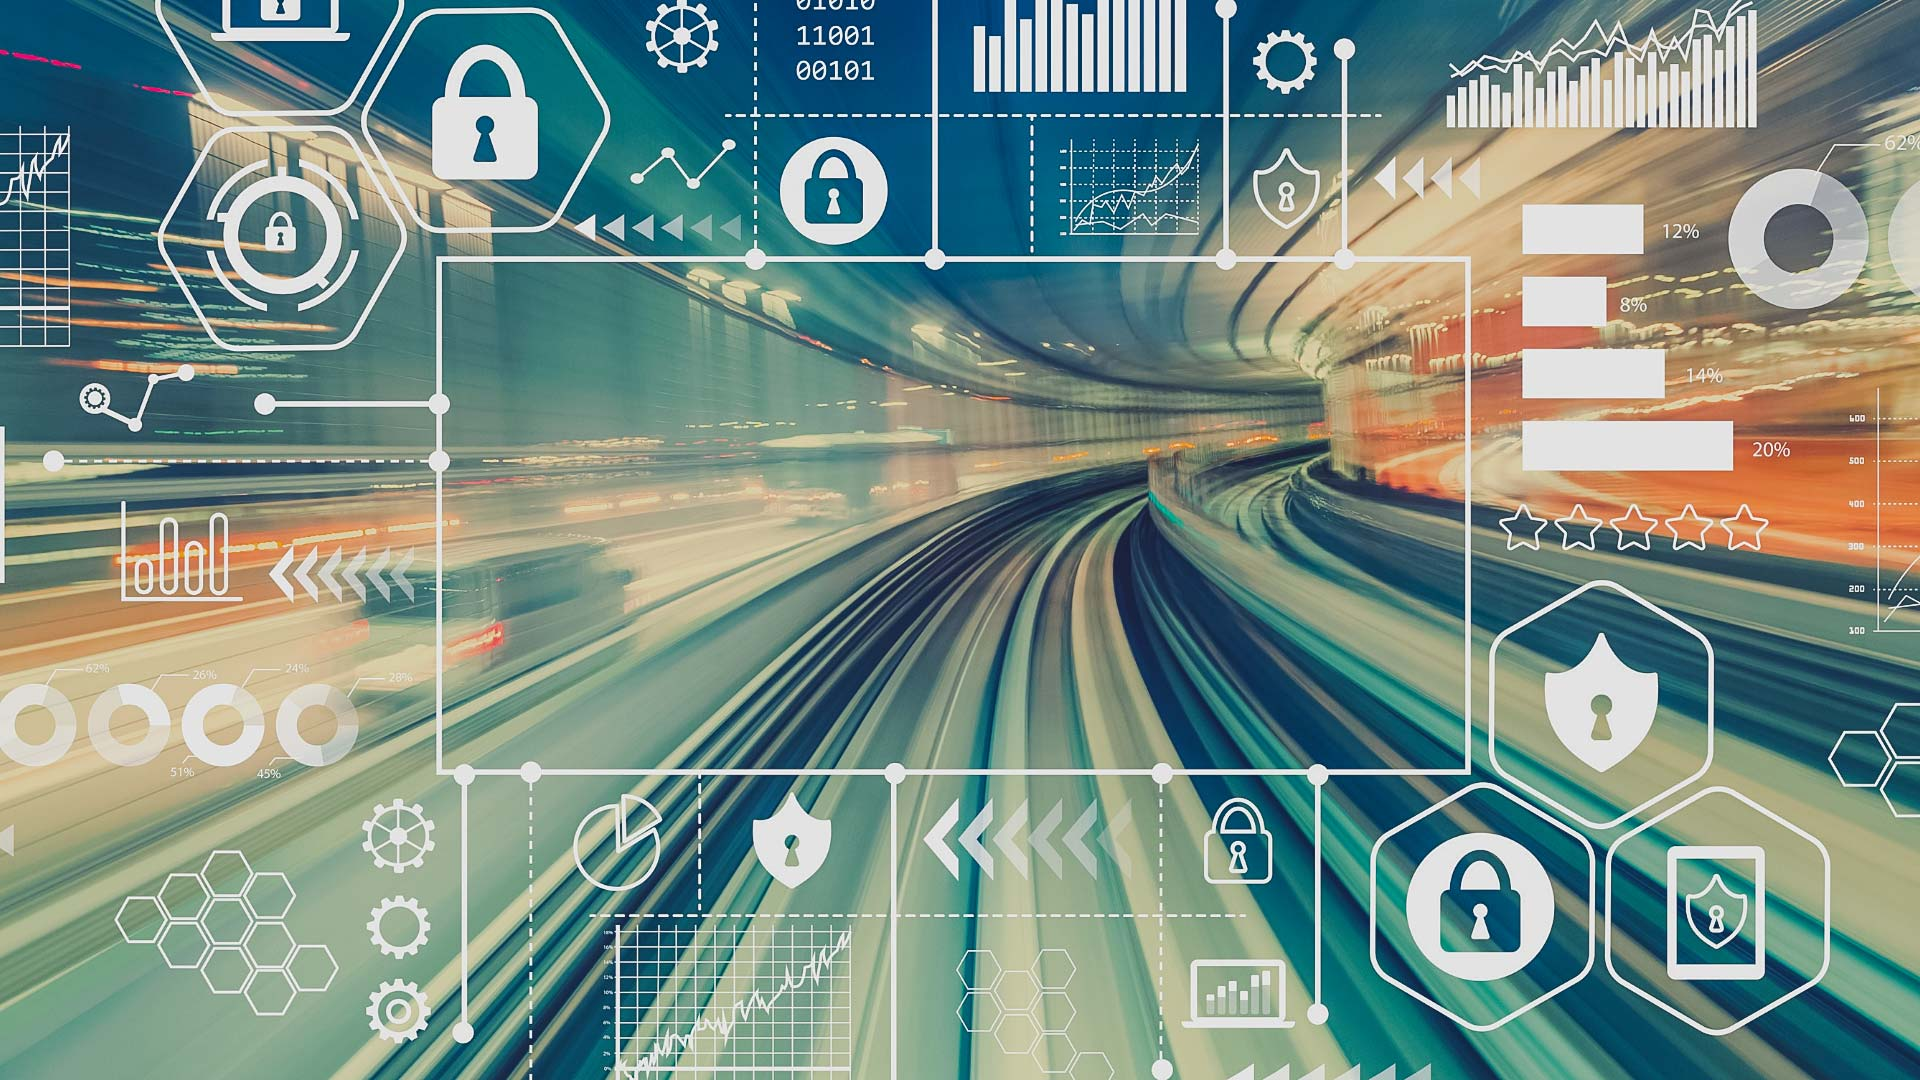 Basic Network Security guide in Small Businesses